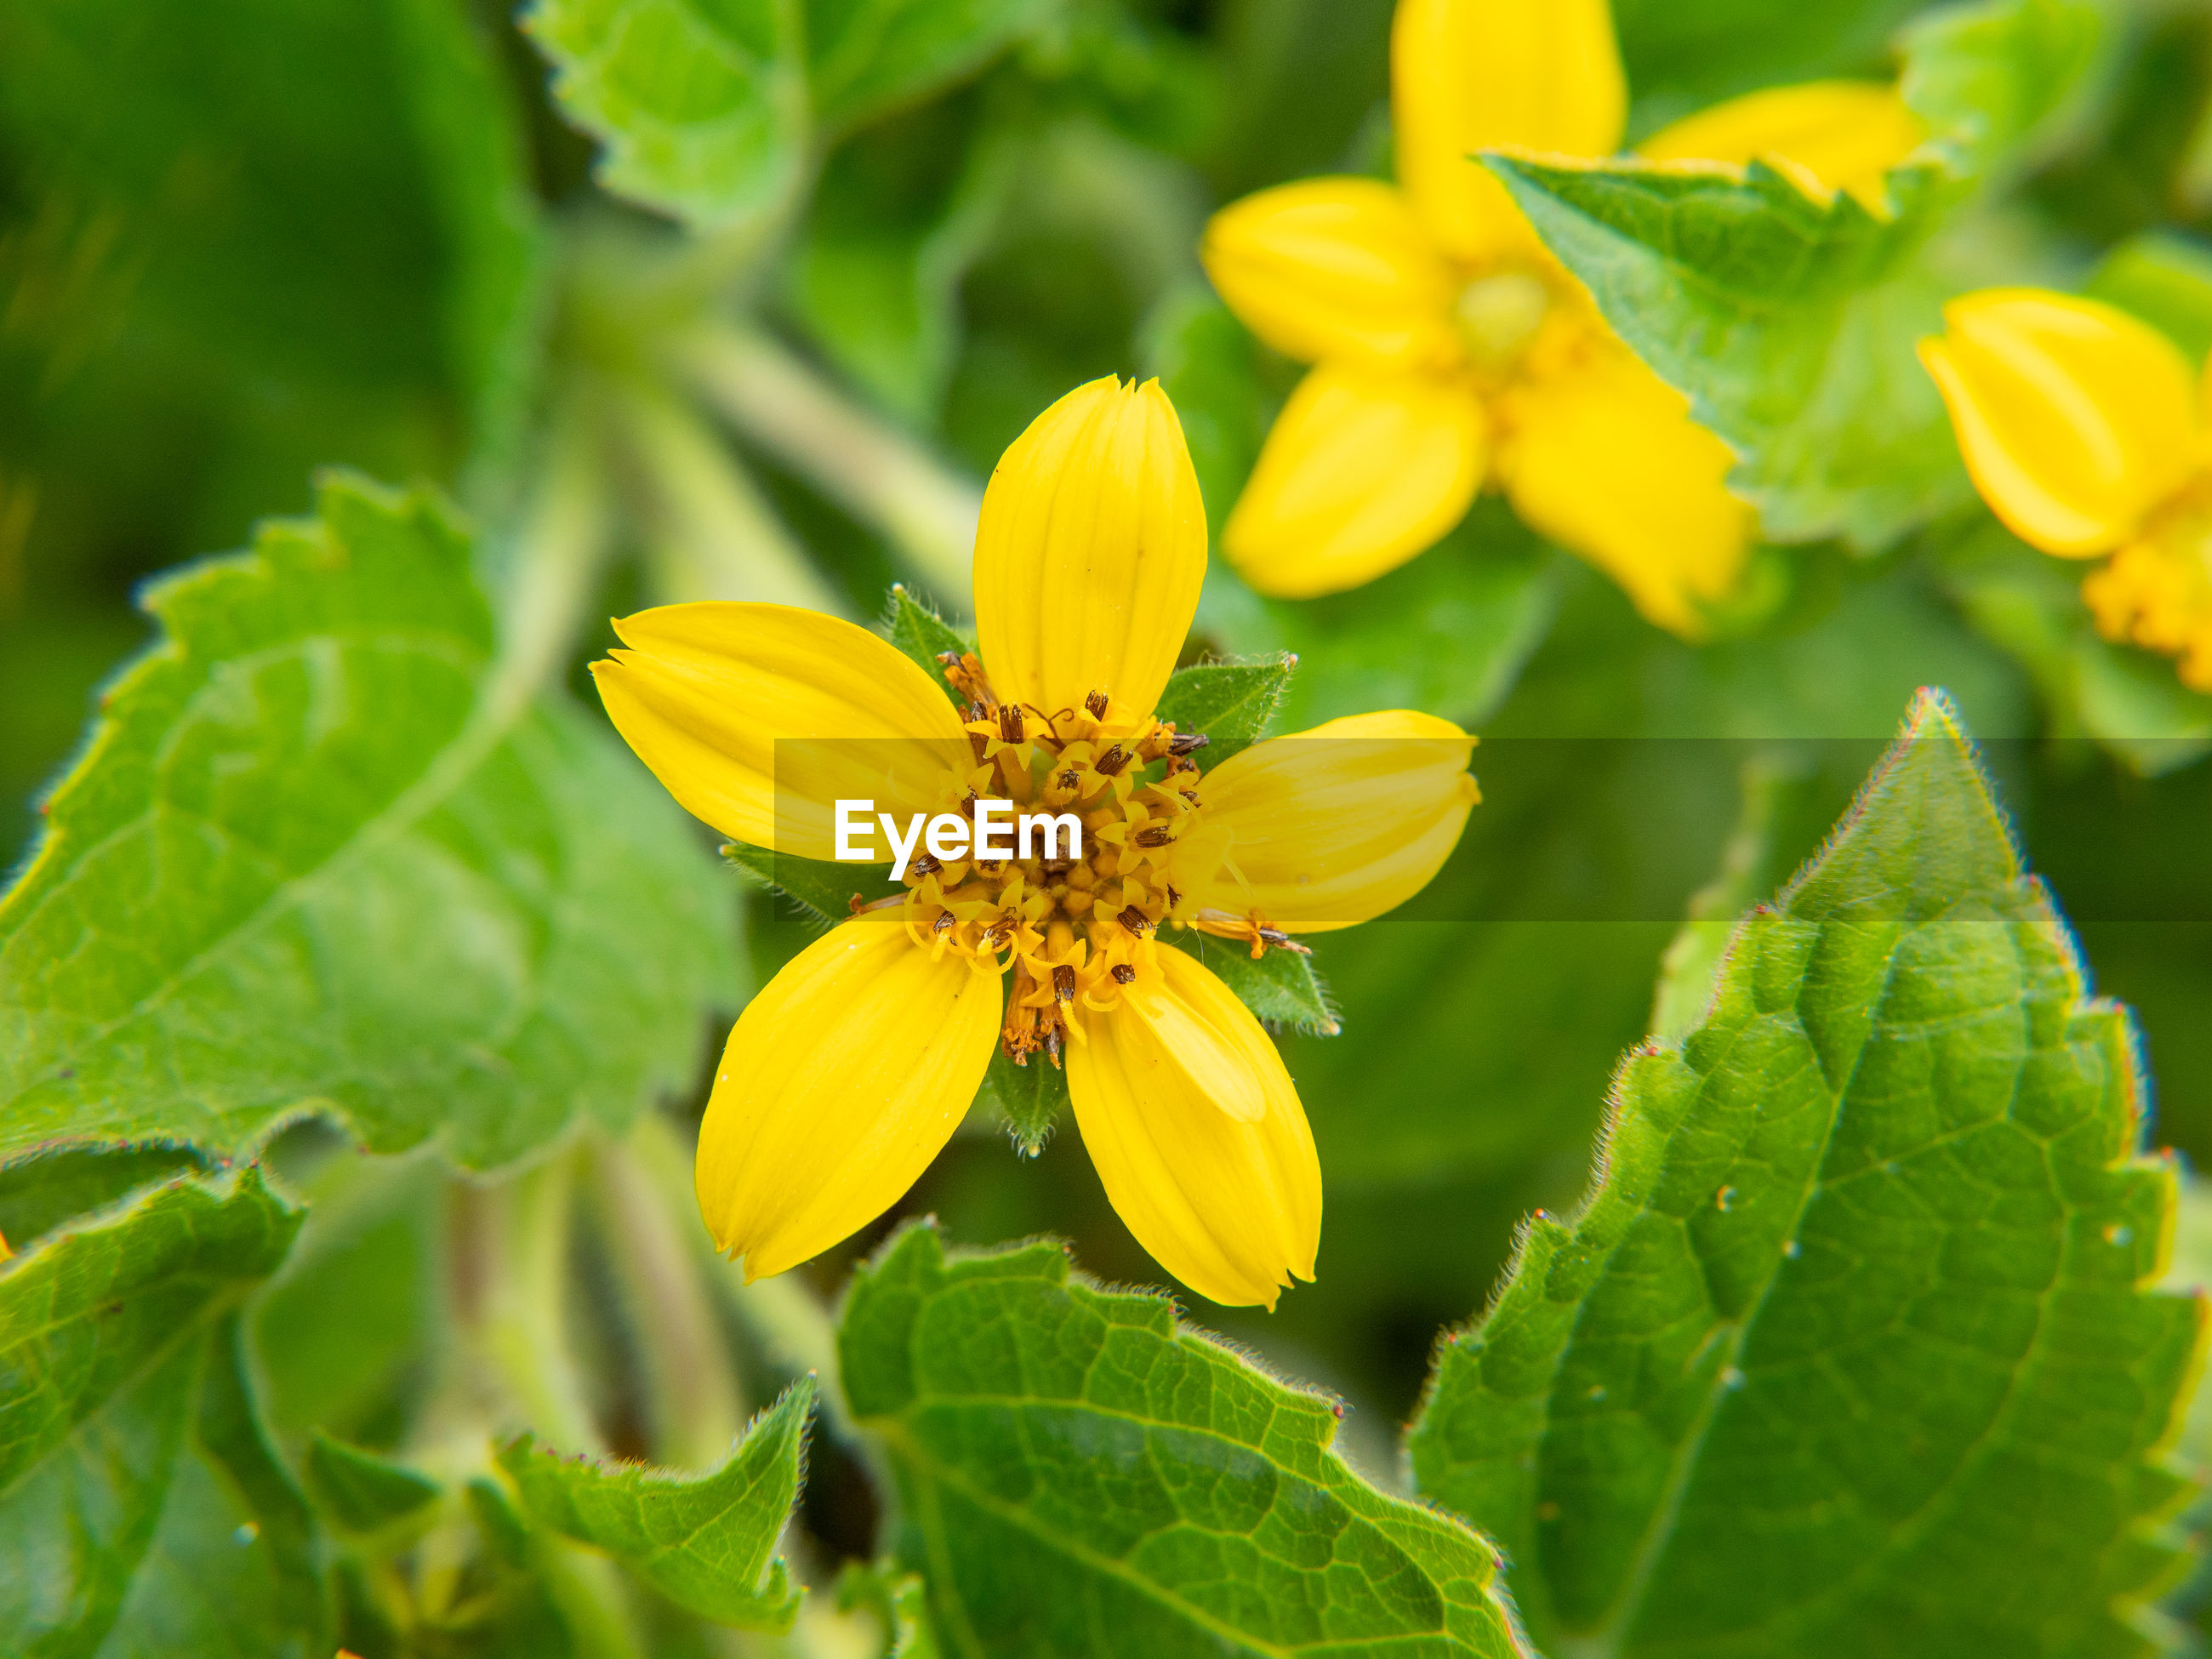 CLOSE-UP OF YELLOW FLOWERING PLANT ON LEAF